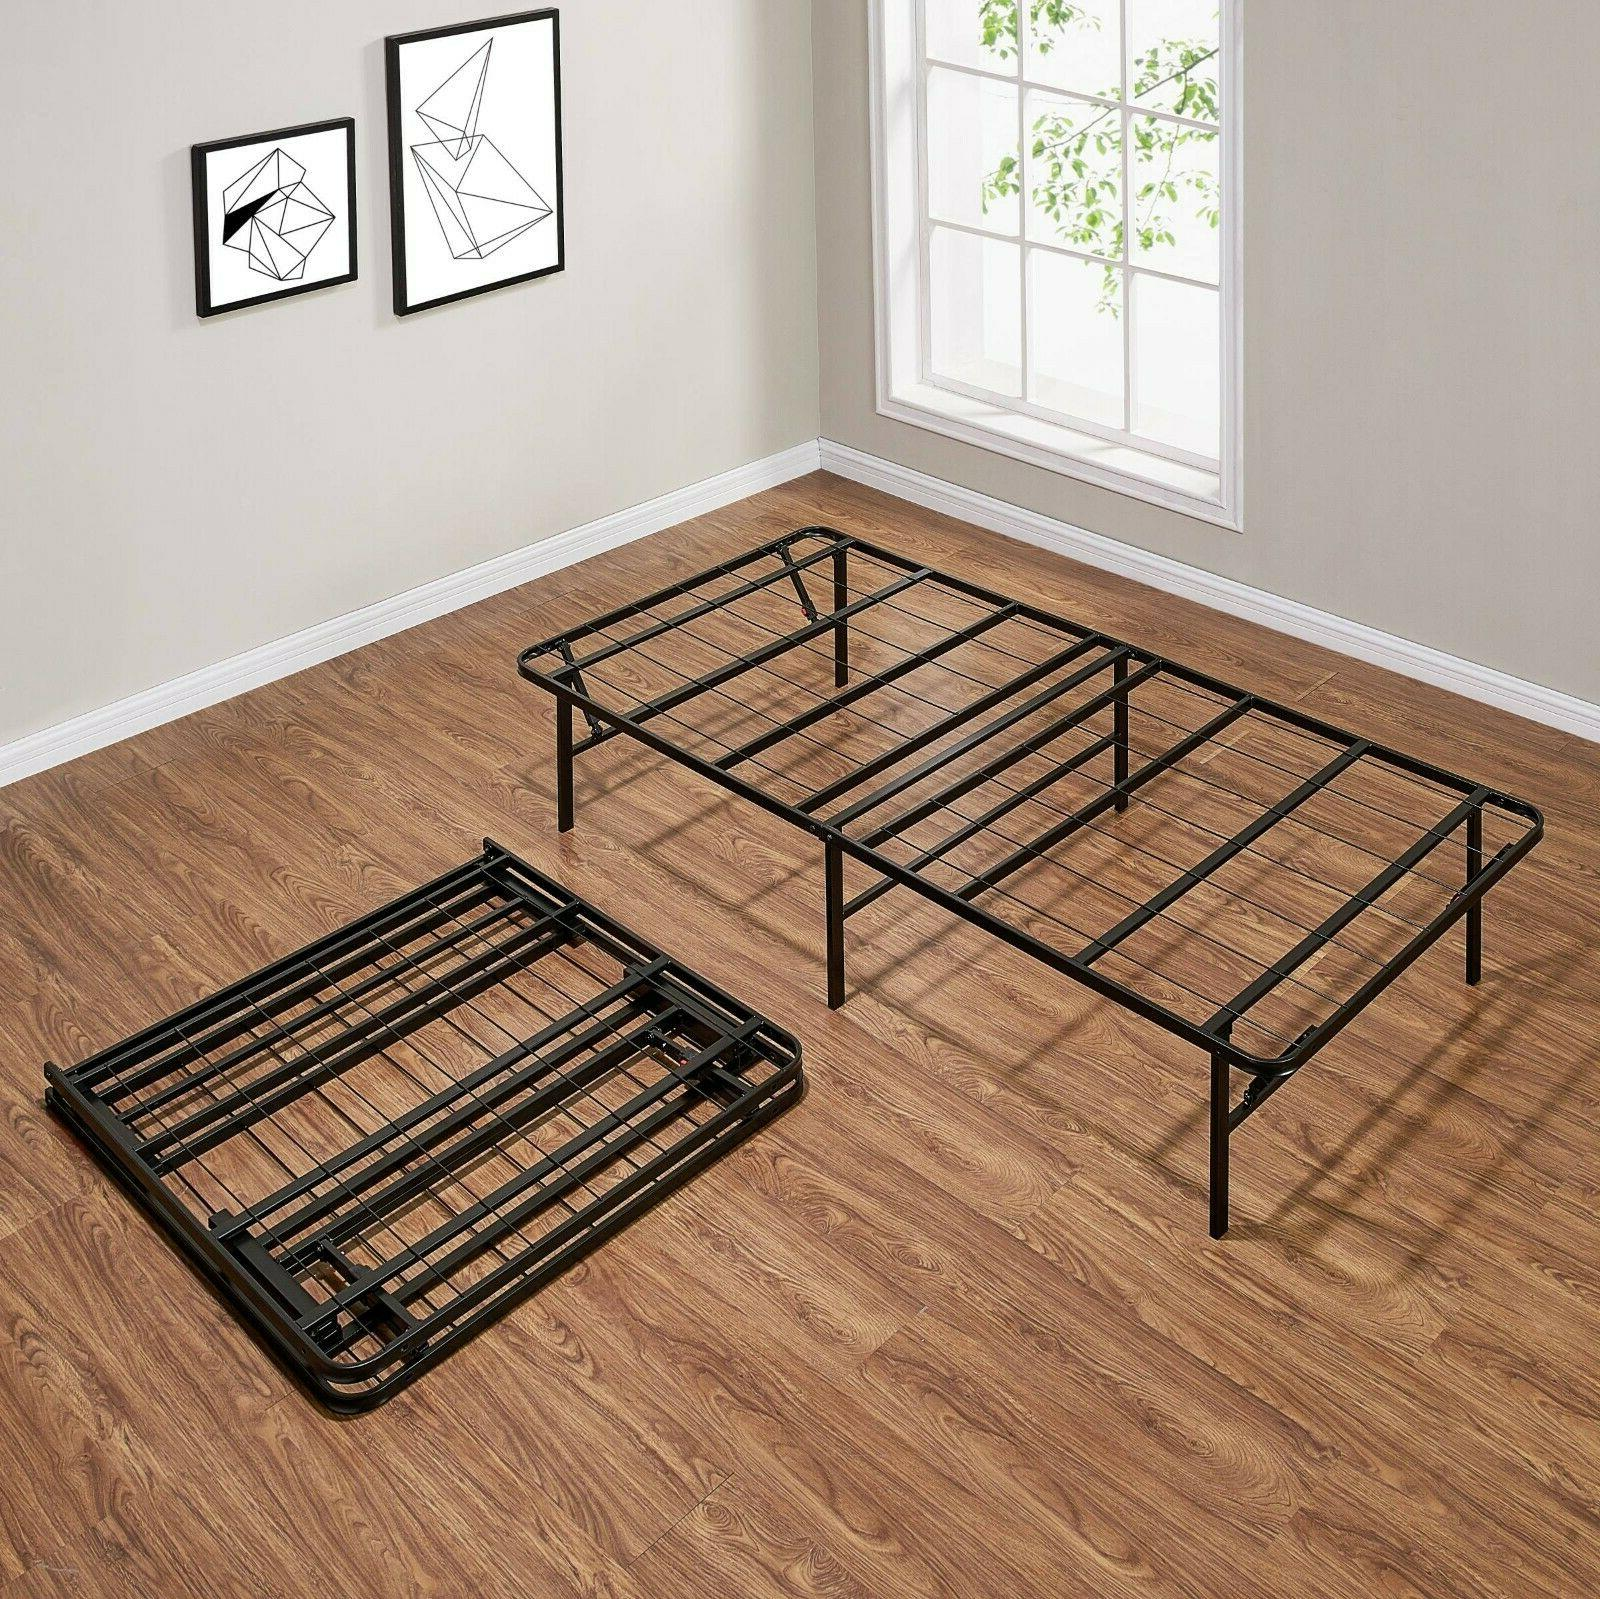 Platform Frame Heavy Duty Foundation Base Queen Full Twin